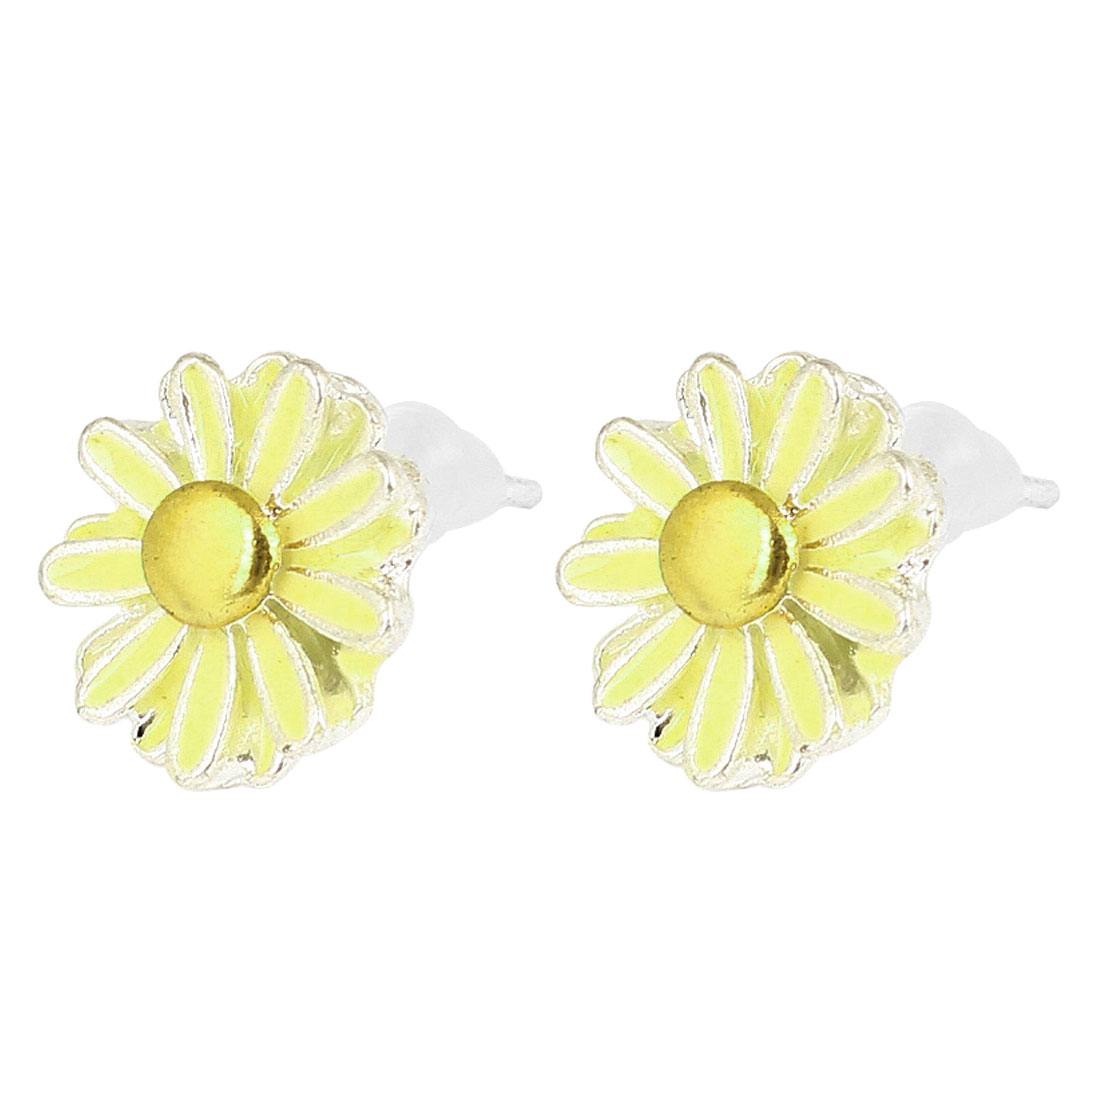 Lady Ear Decor Silver Tone Beige Flower Daisy Shaped Ornament Stud Earrings Pair